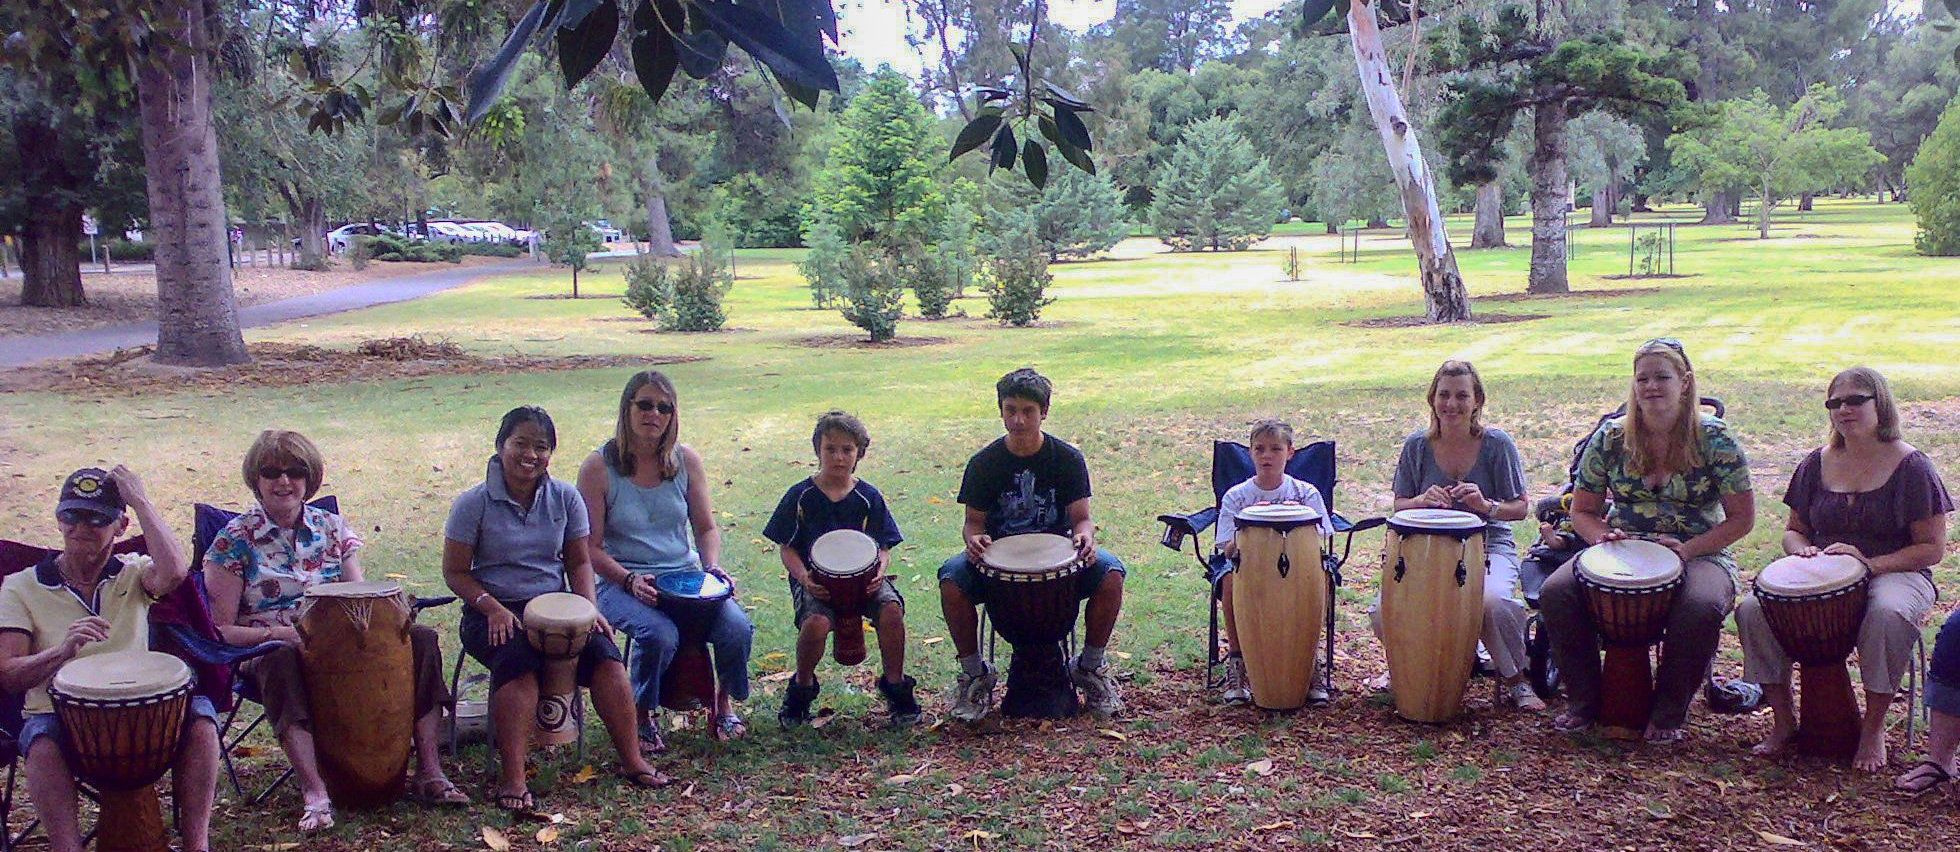 Drumming Workshop with The Percussion House, Botanic Park, Adelaide